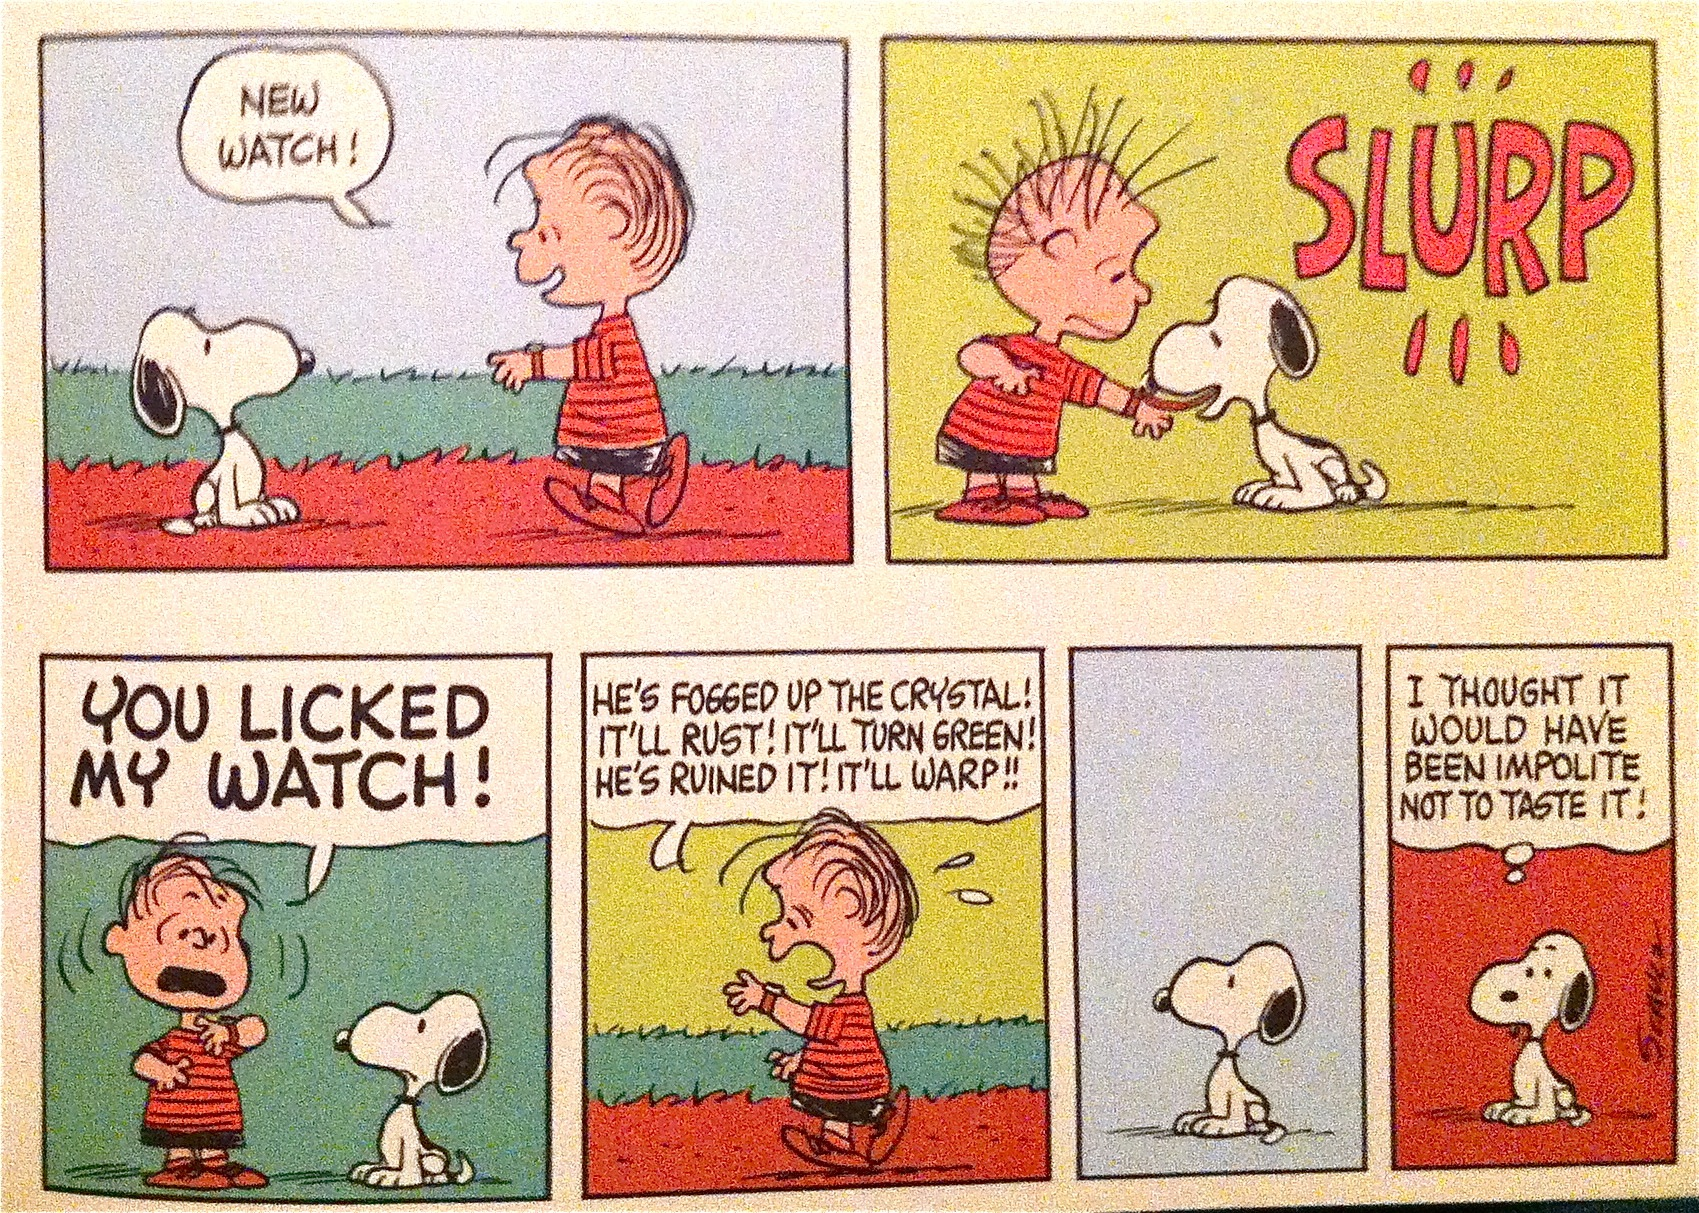 Snoopy / Charlie Brown Peanuts-licked-my-watch